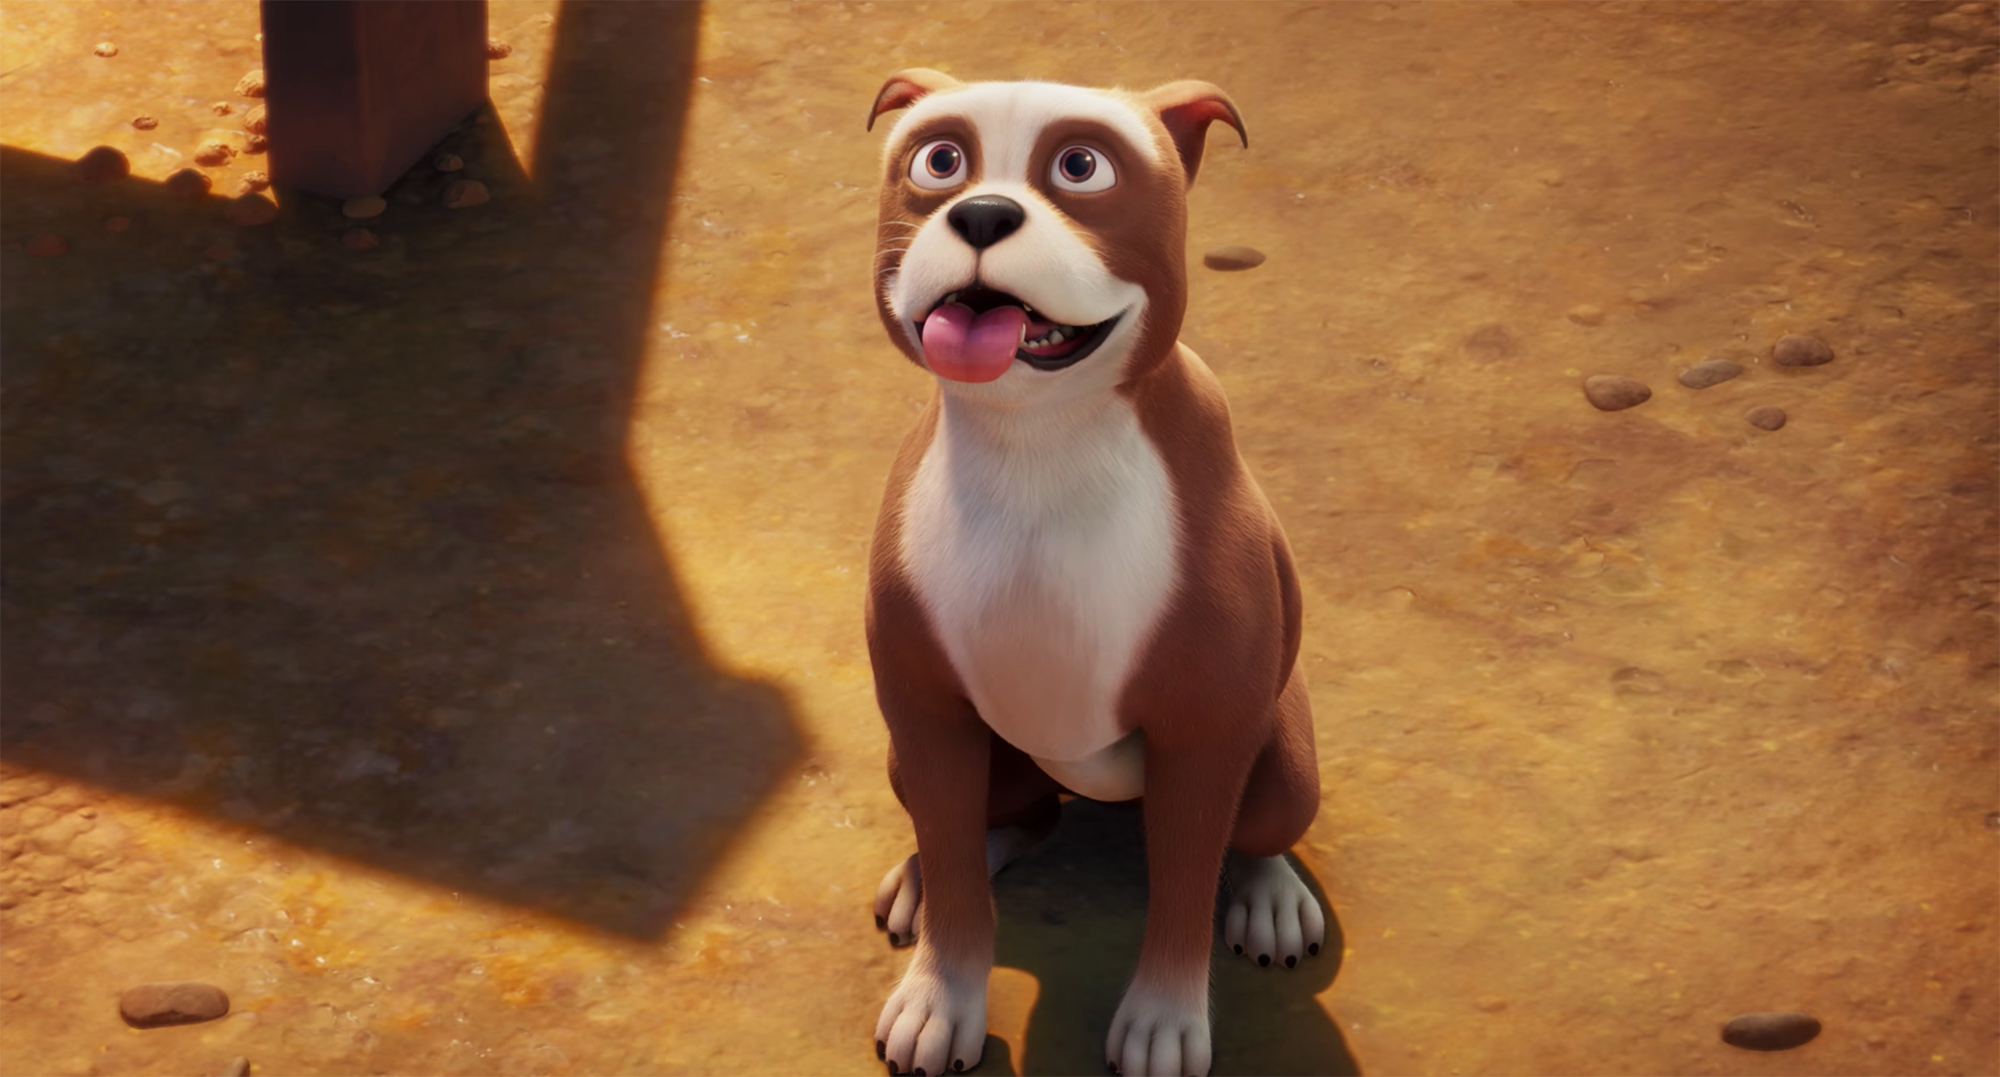 American Hero Dog Sgt. Stubby Honored With Cartoon Movie